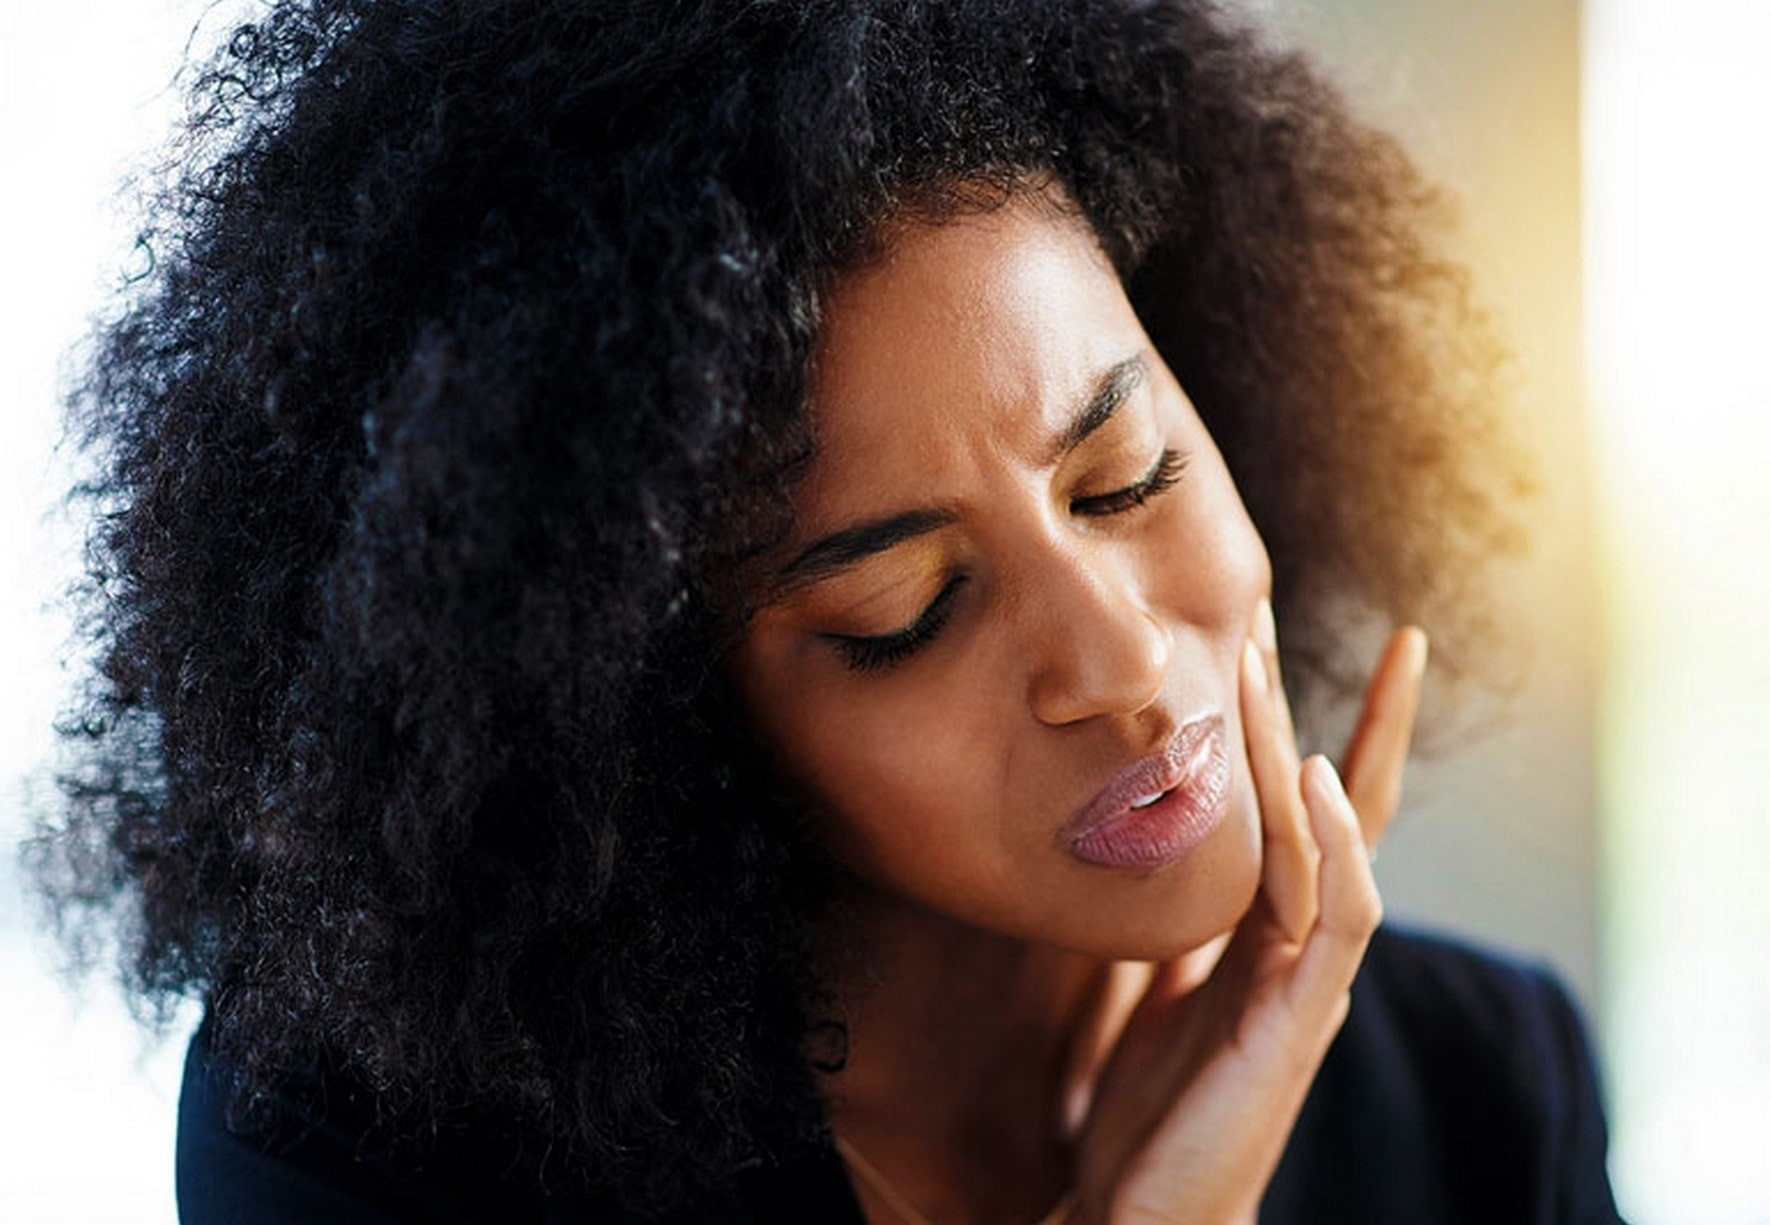 Facial Hair Removal: woman with paid expression touching her cheek.